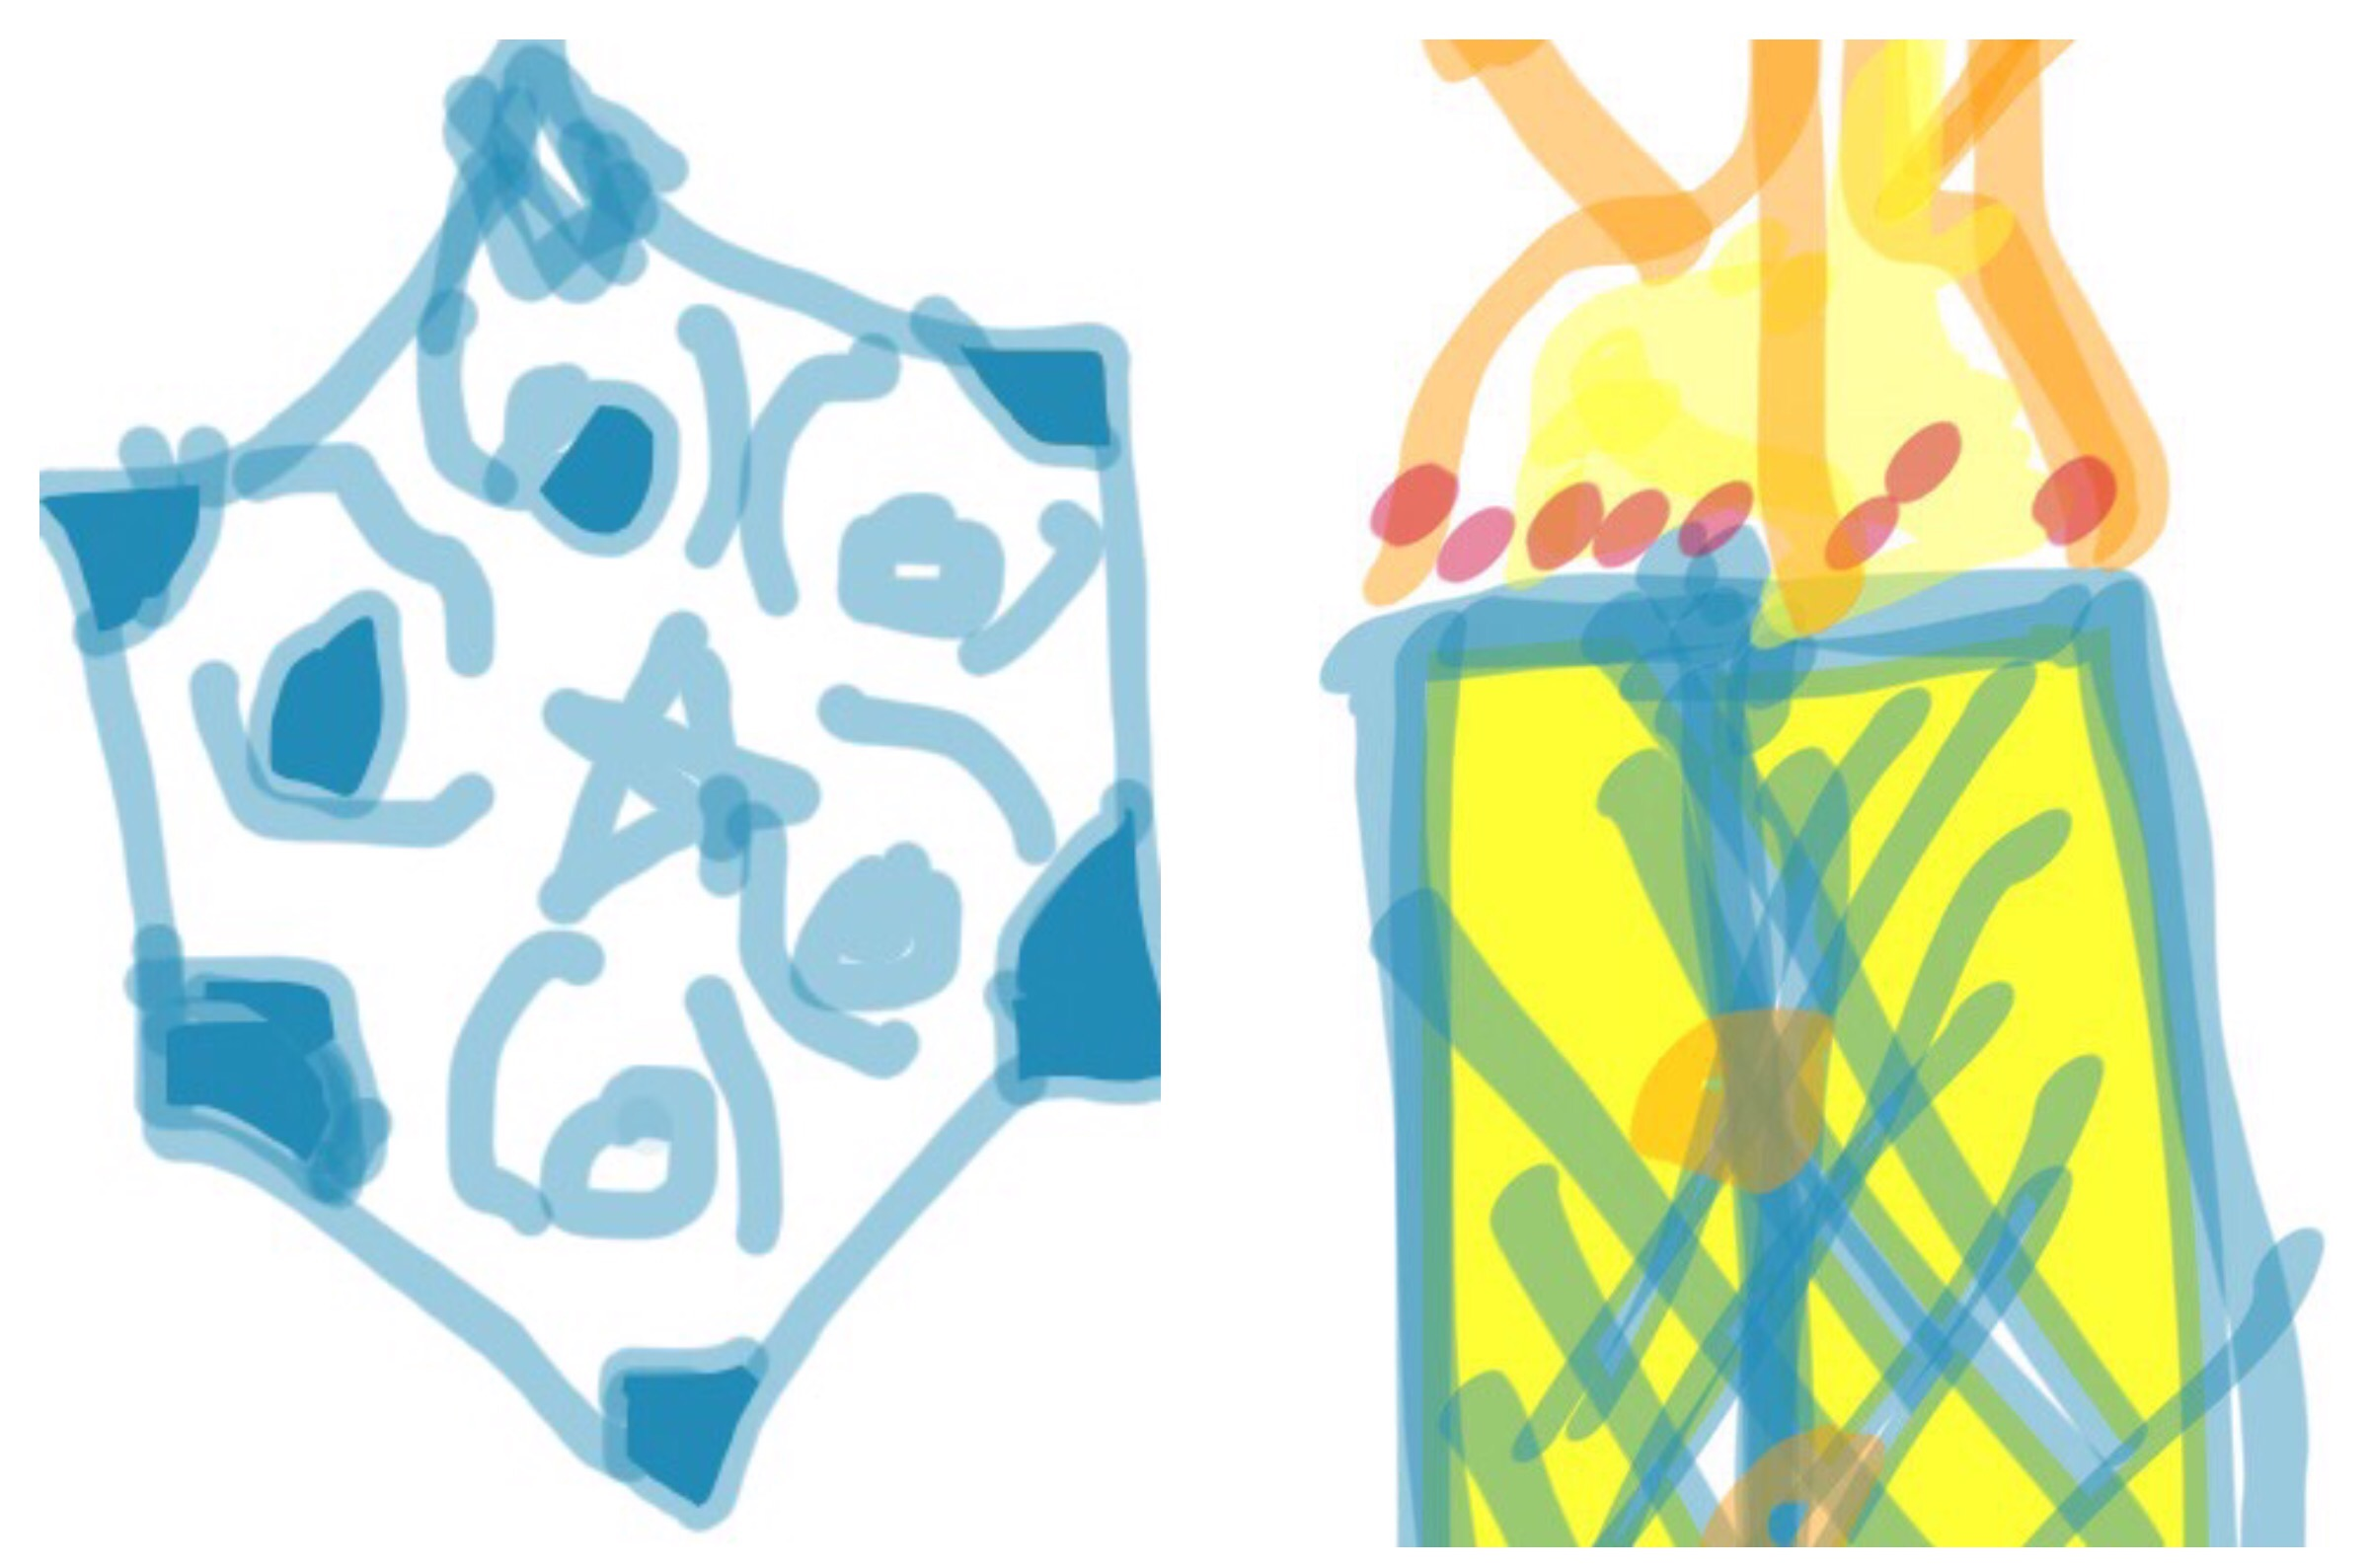 Iznik Tile  and  Tik , MuseumDraw with Mike Bee at Mia..